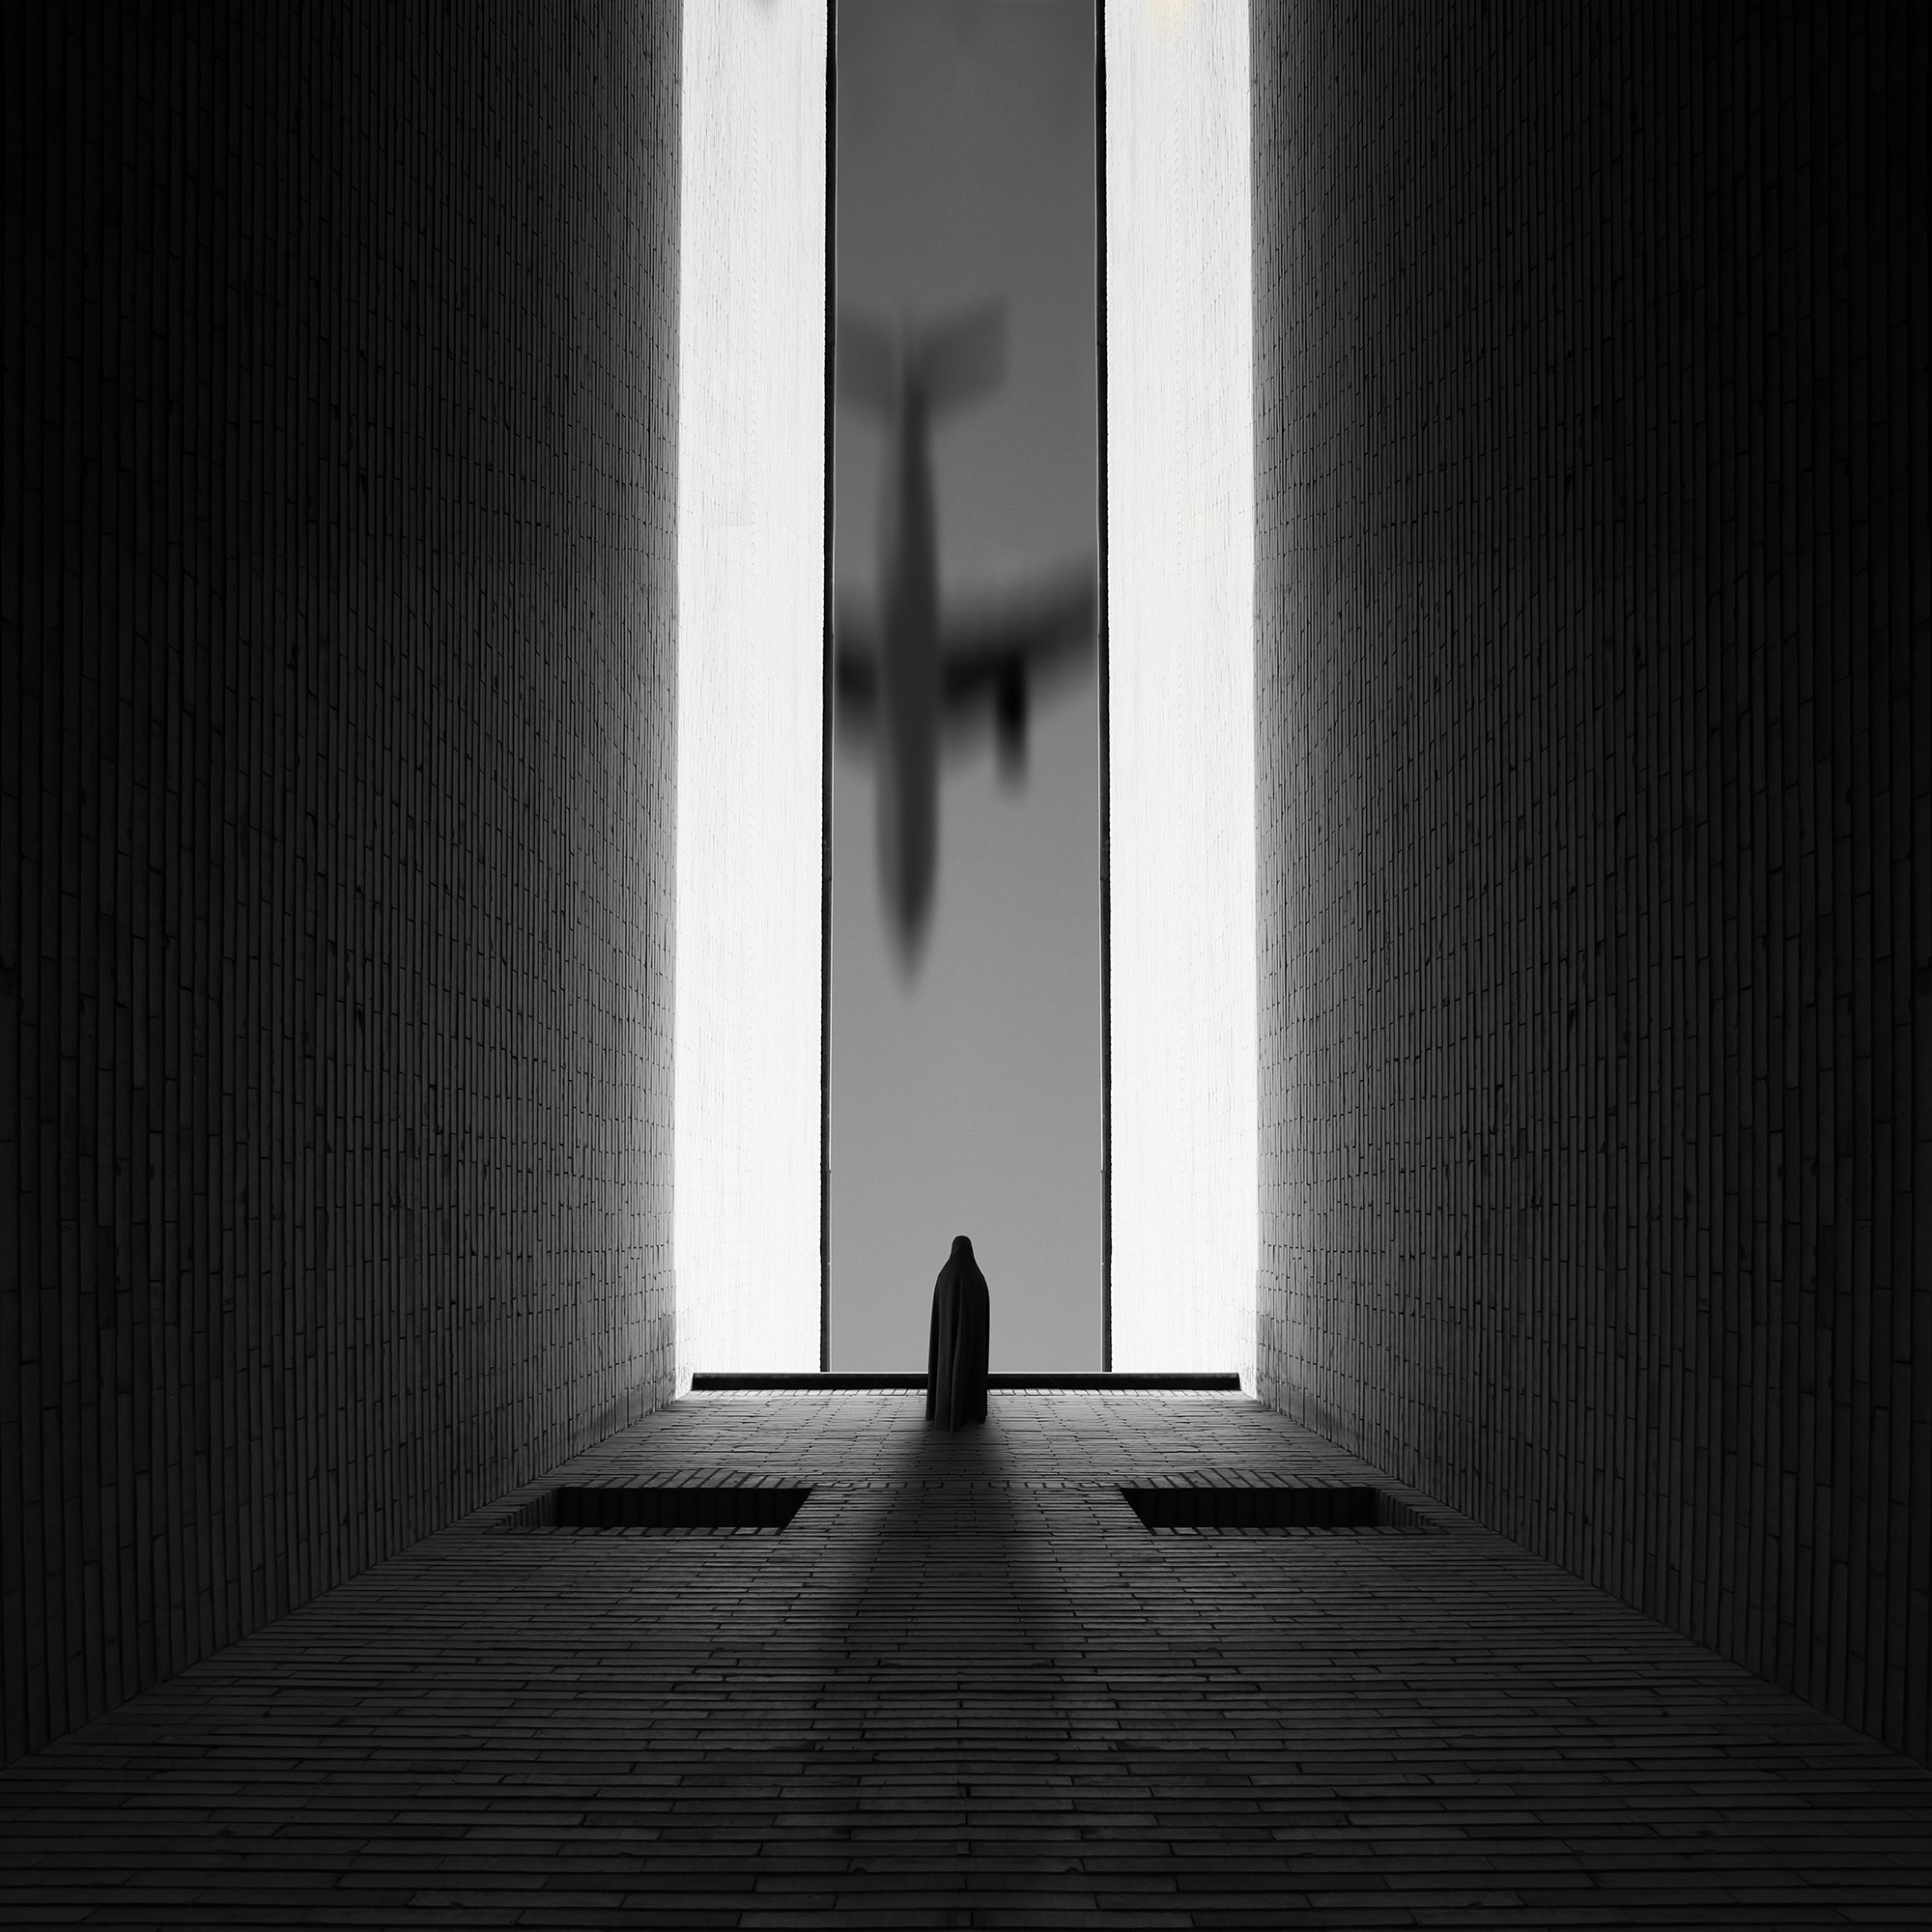 Milad_Safabakhsh_The spce in between By Milad safabakhsh (4).jpg